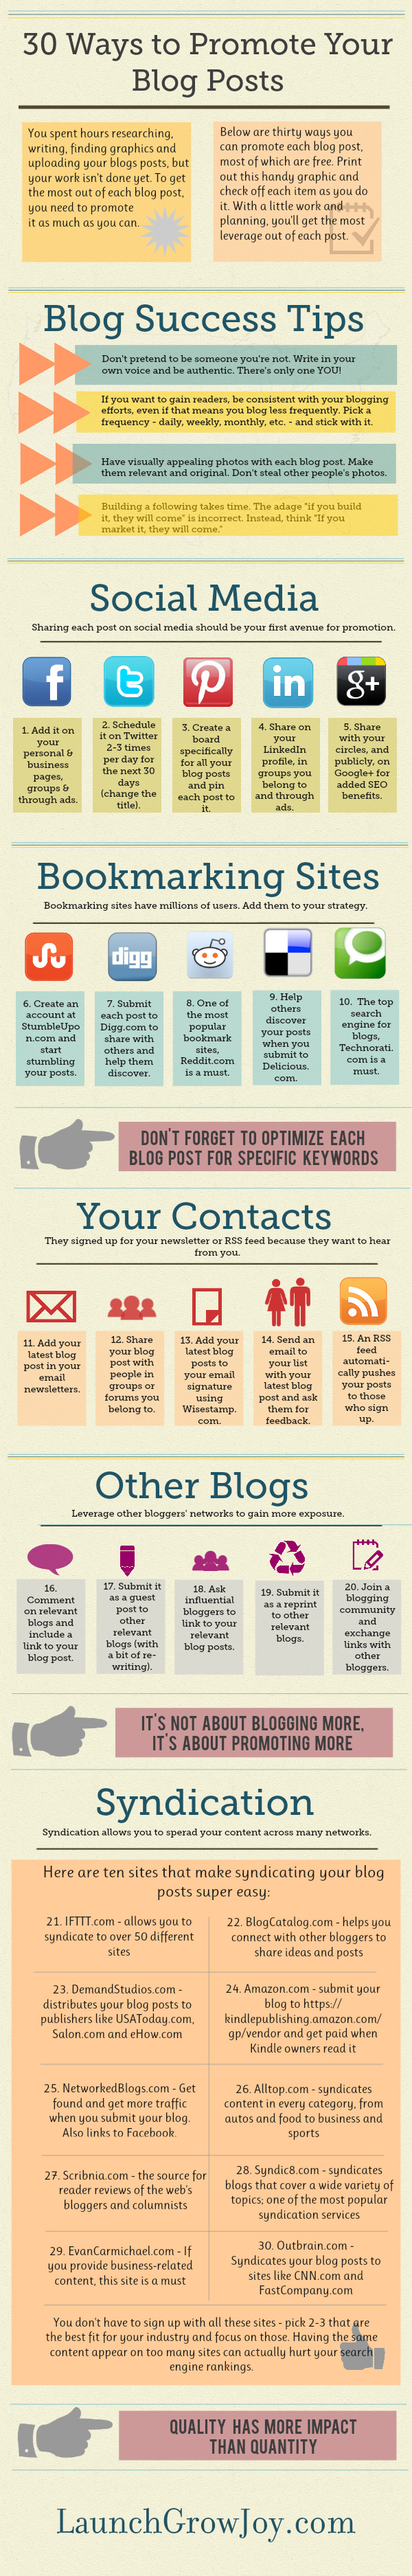 30 ways to promote your blog posts1 30 Ways to Promote Your Articles [Infographic]